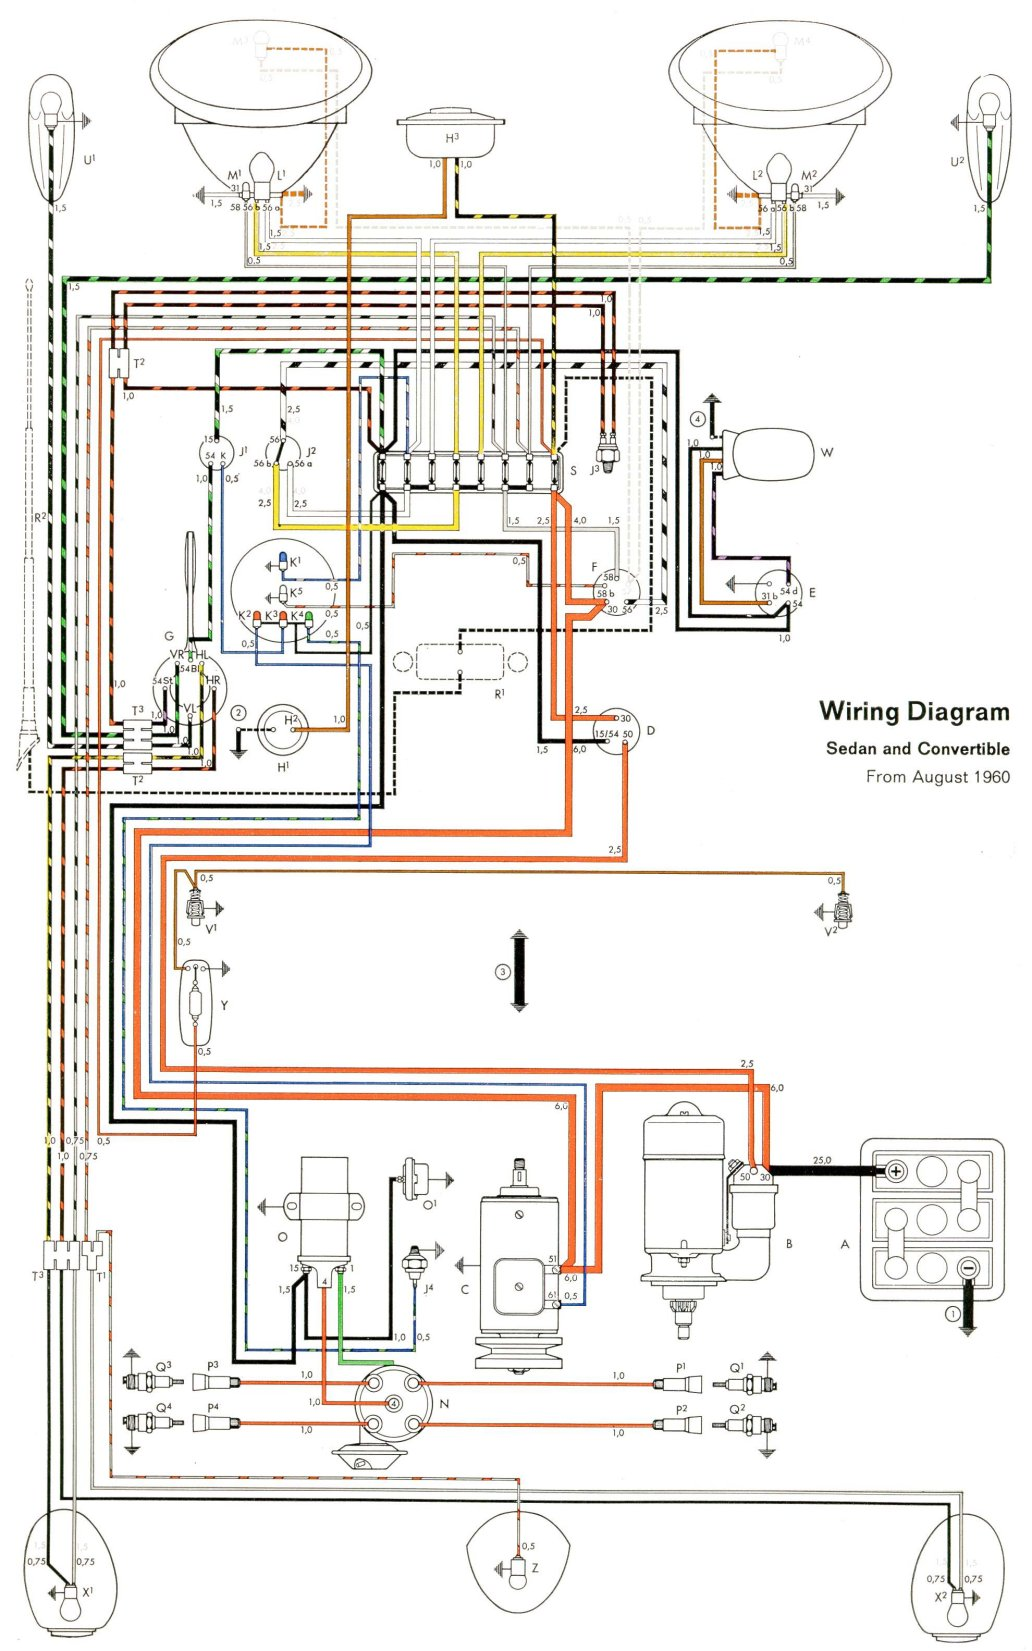 Type 1 Wiring Diagrams 1967 Charger Diagram